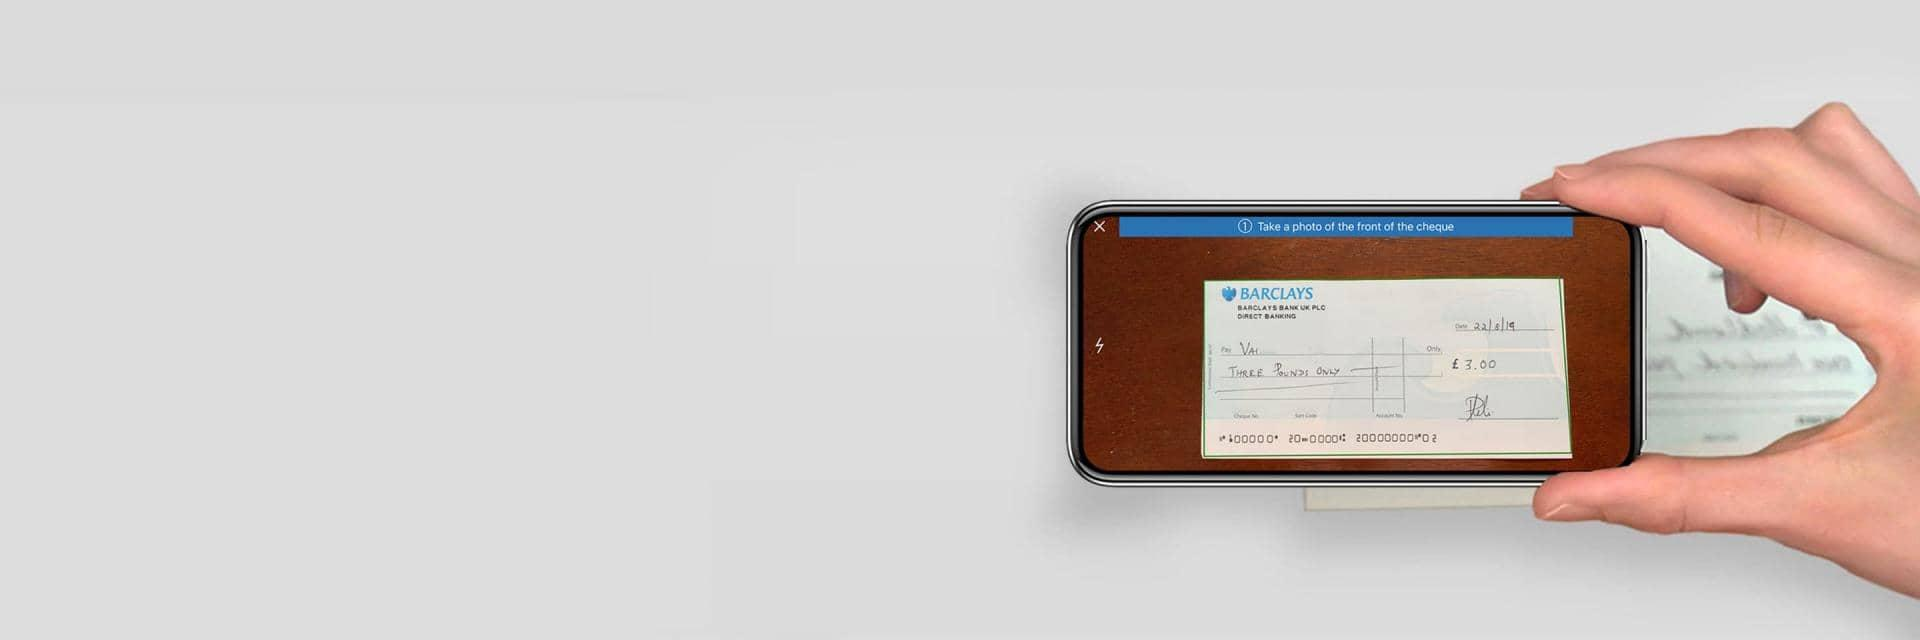 Future of cheques | Barclays